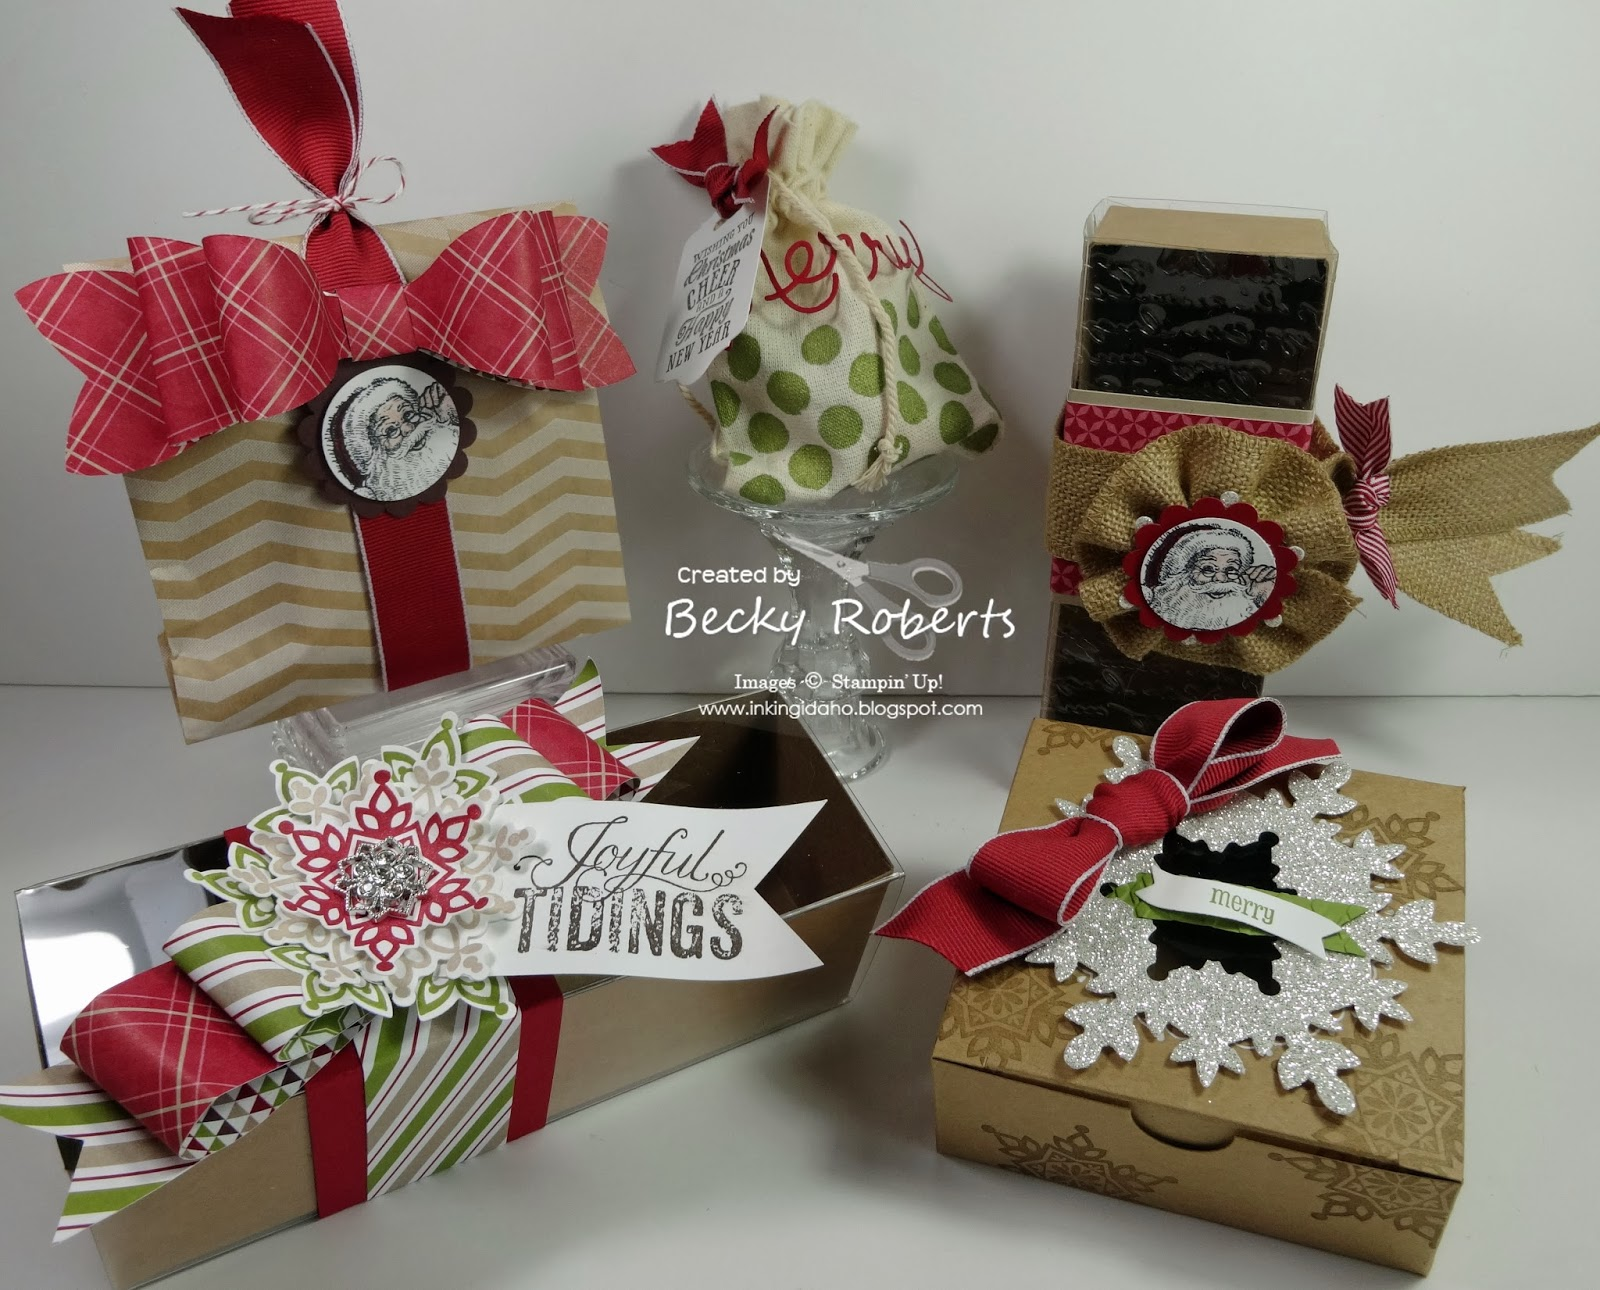 Inking Idaho: Creative Gift Packaging Class